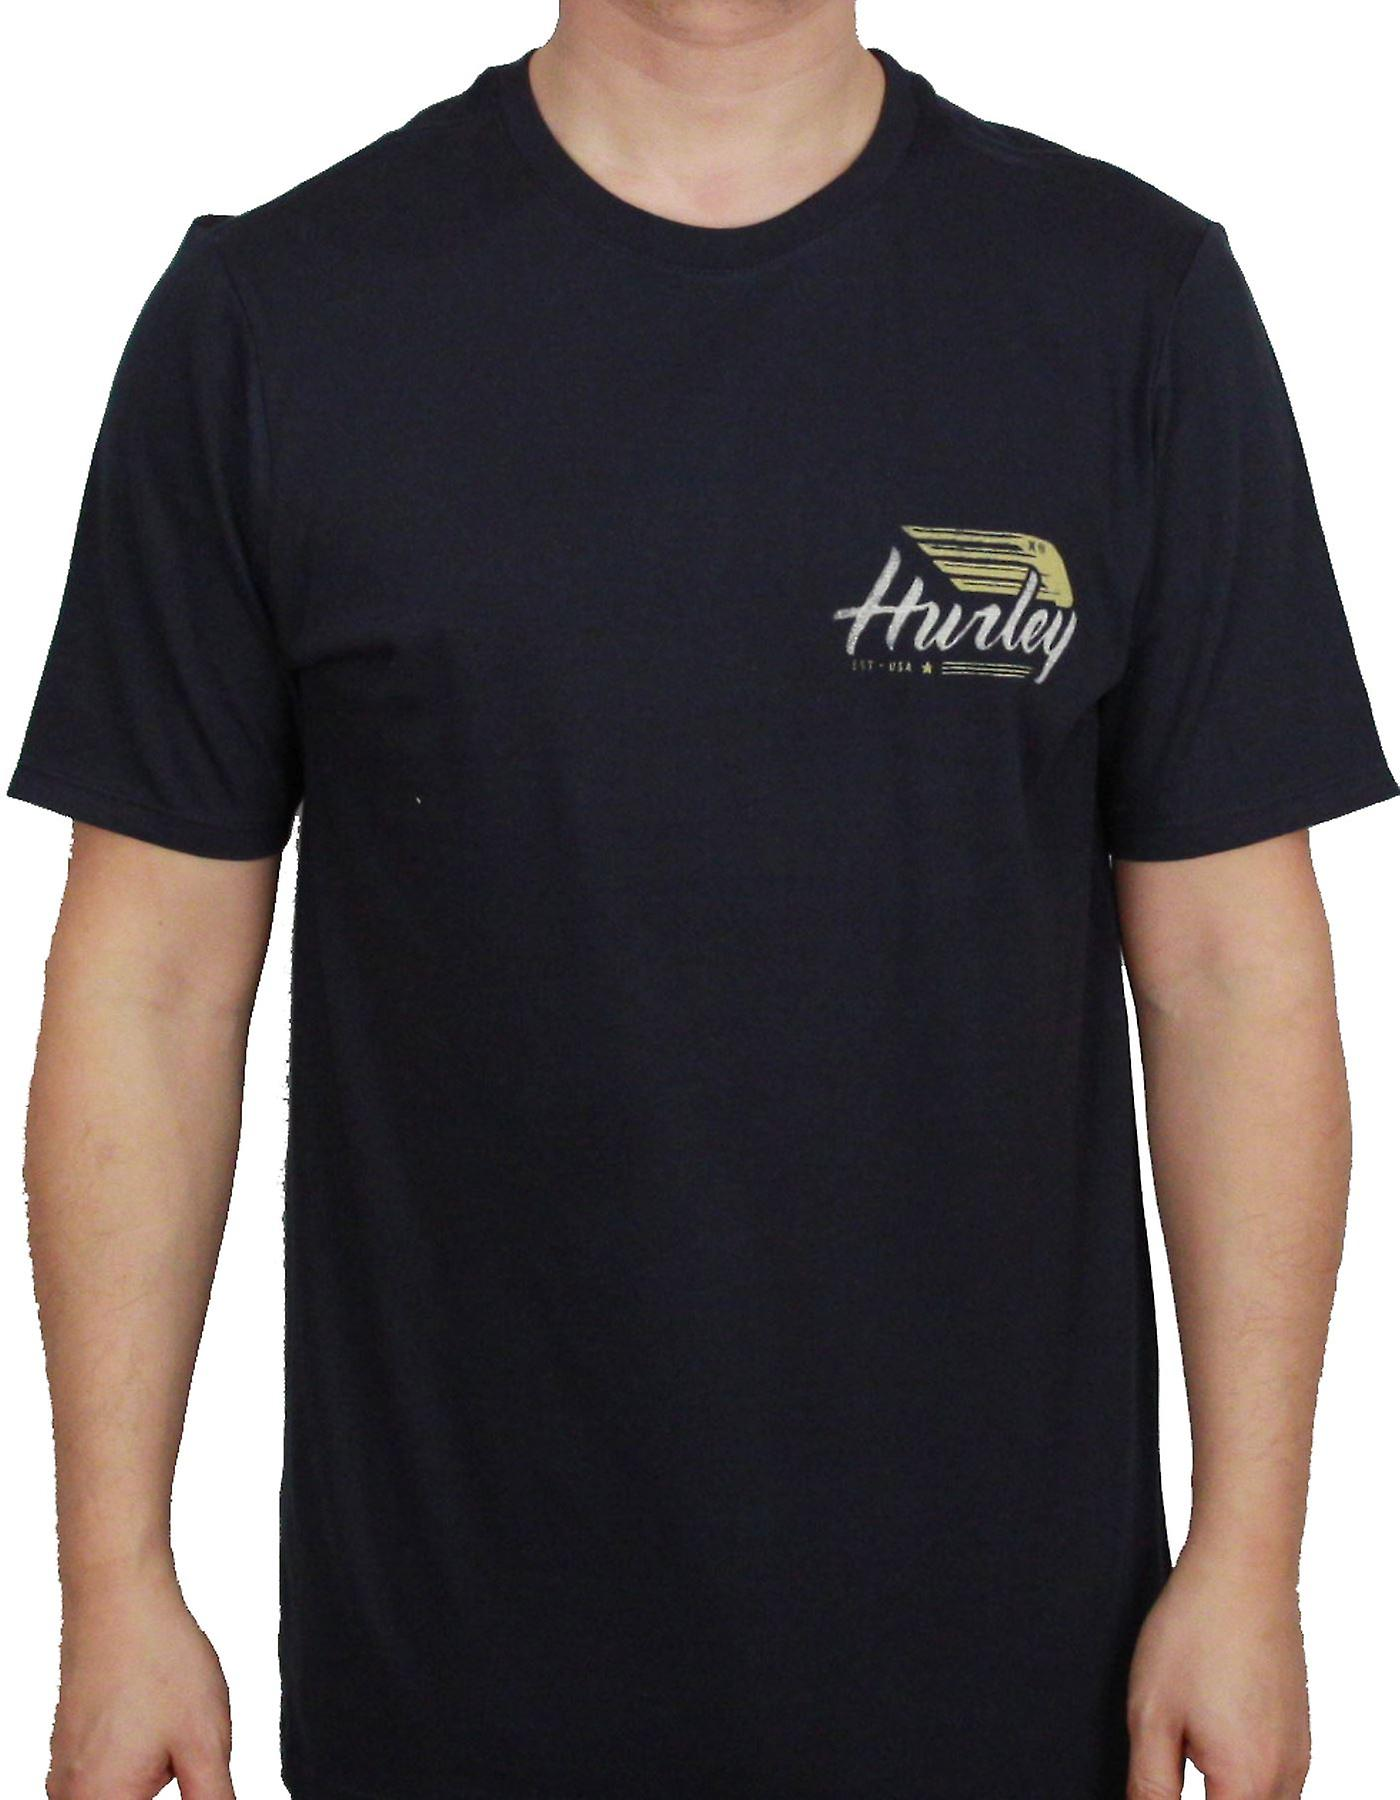 Hurley T-Shirt ~ Wings Up navy